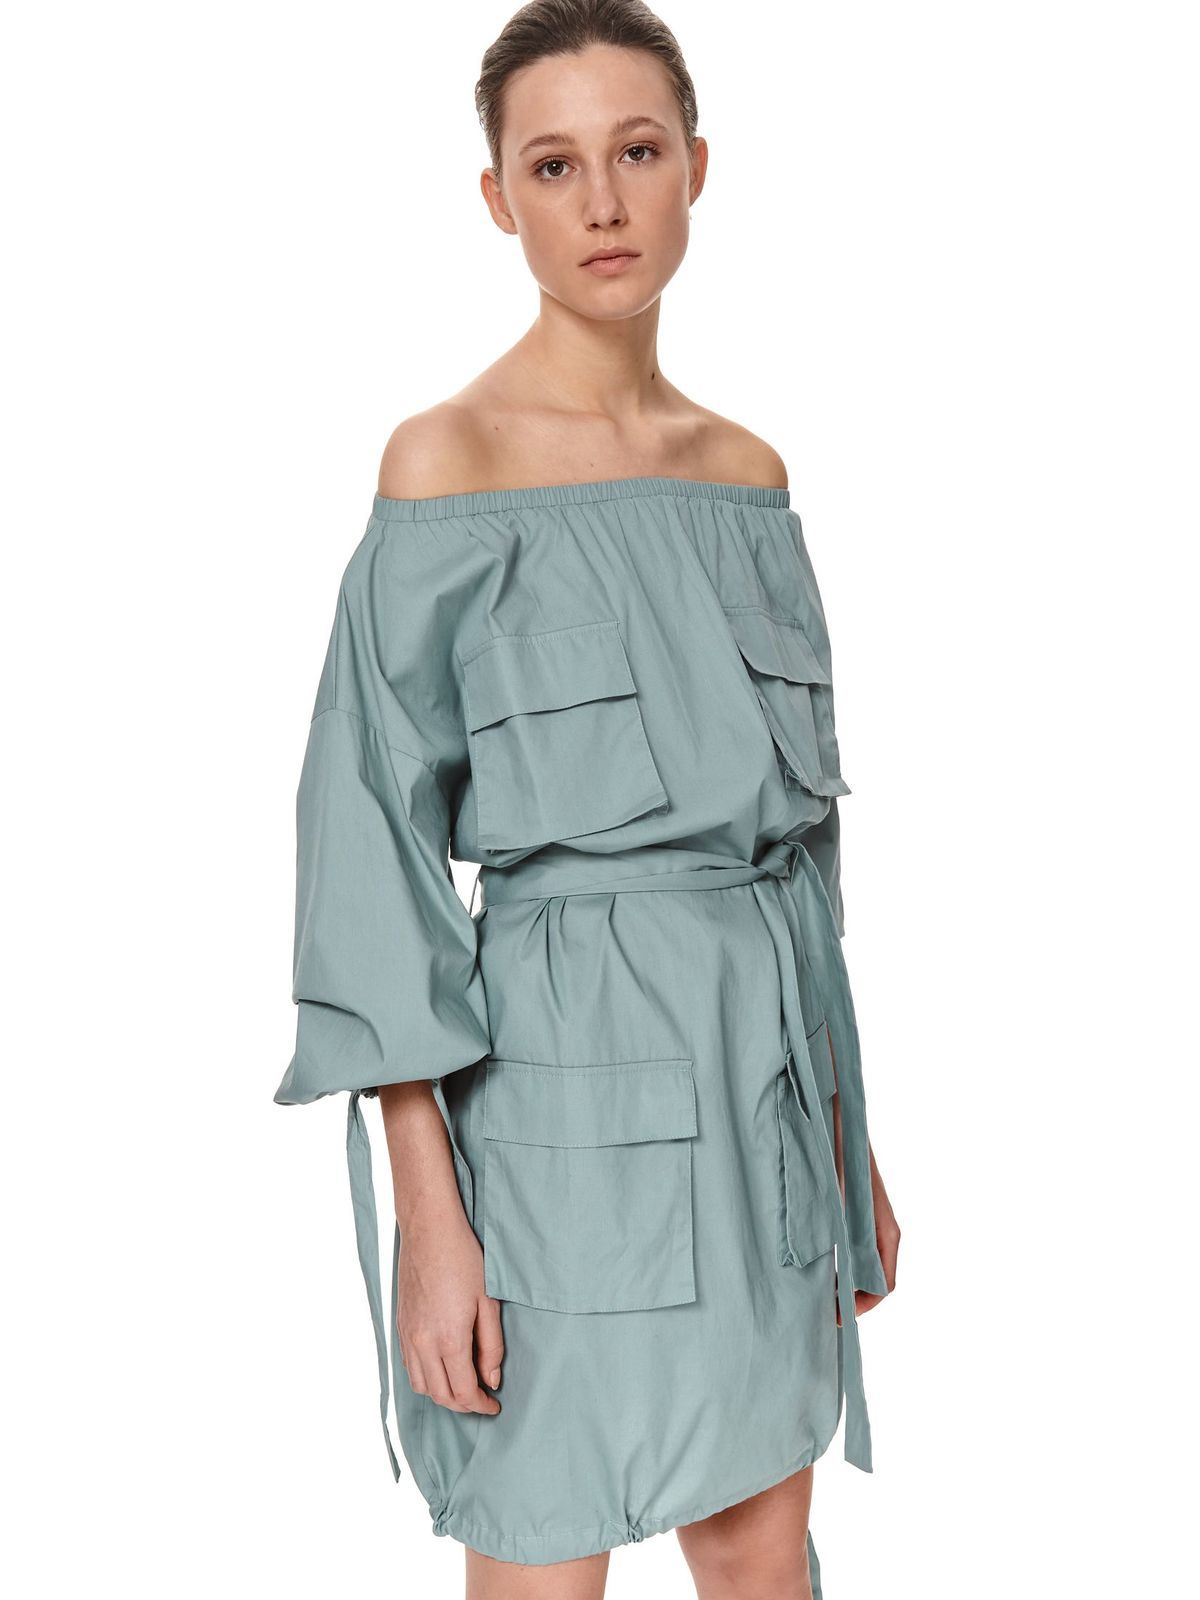 Green dress cotton on the shoulders with pockets loose fit